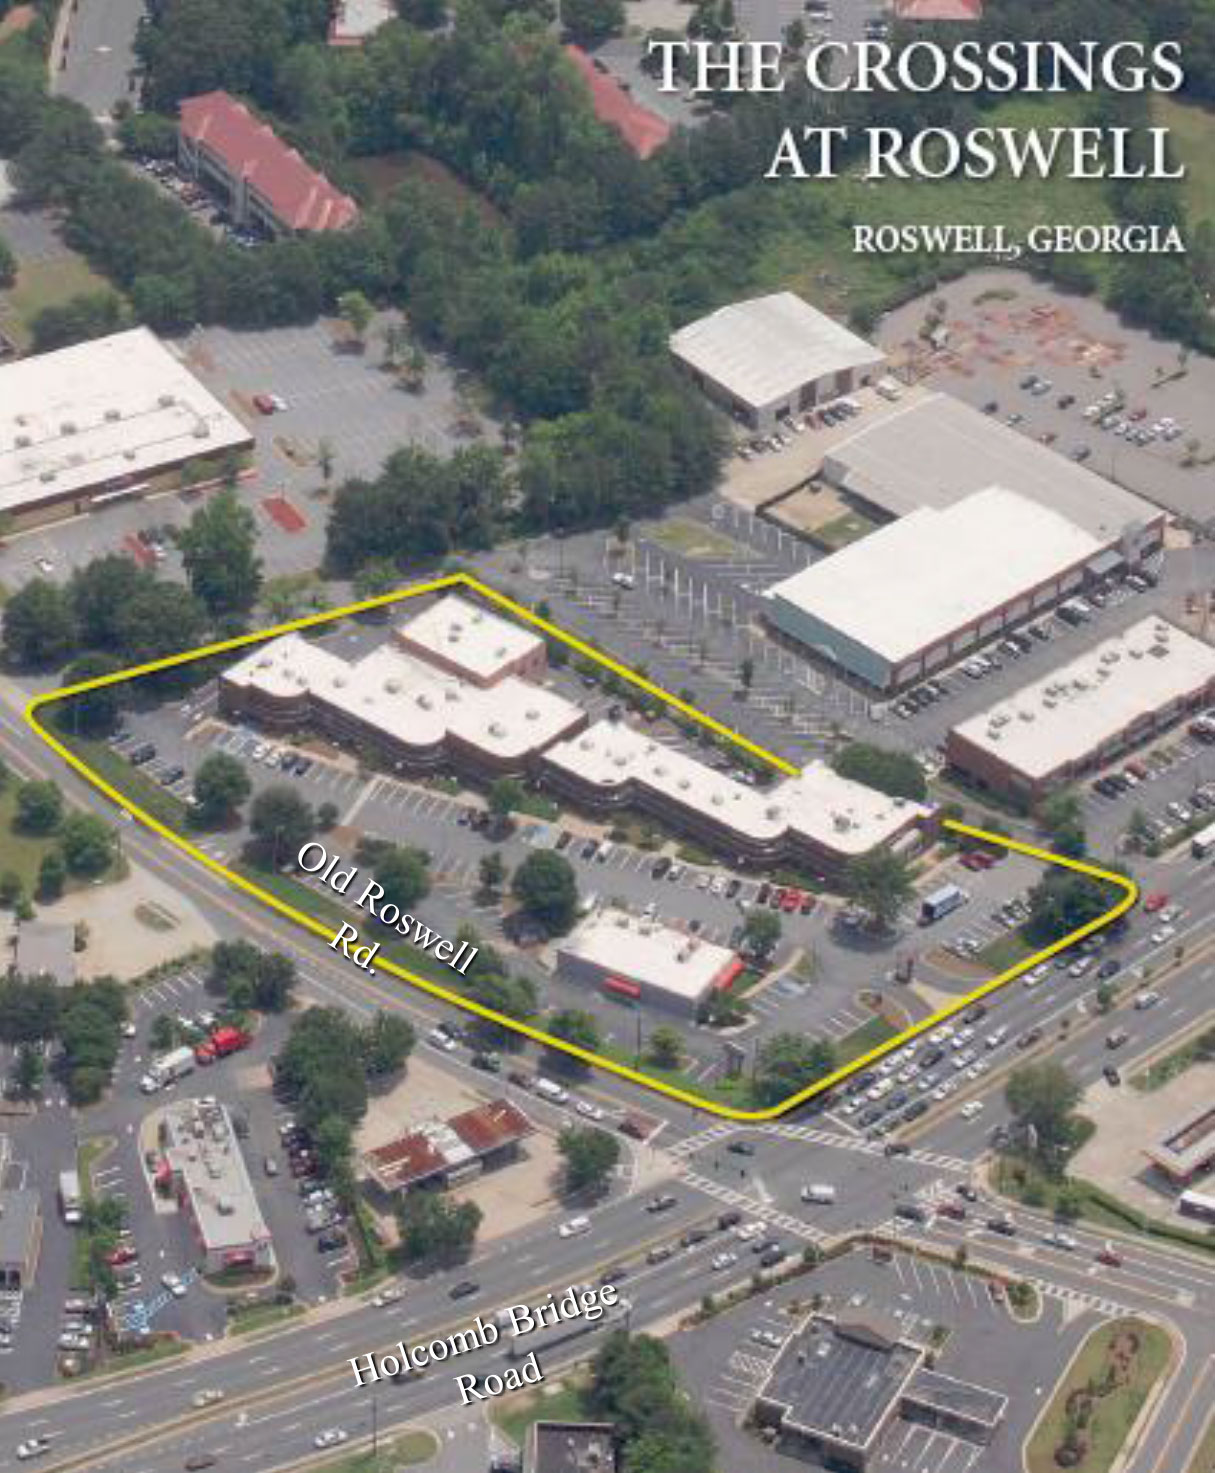 The Crossings at Roswell - The Crossings at Roswell